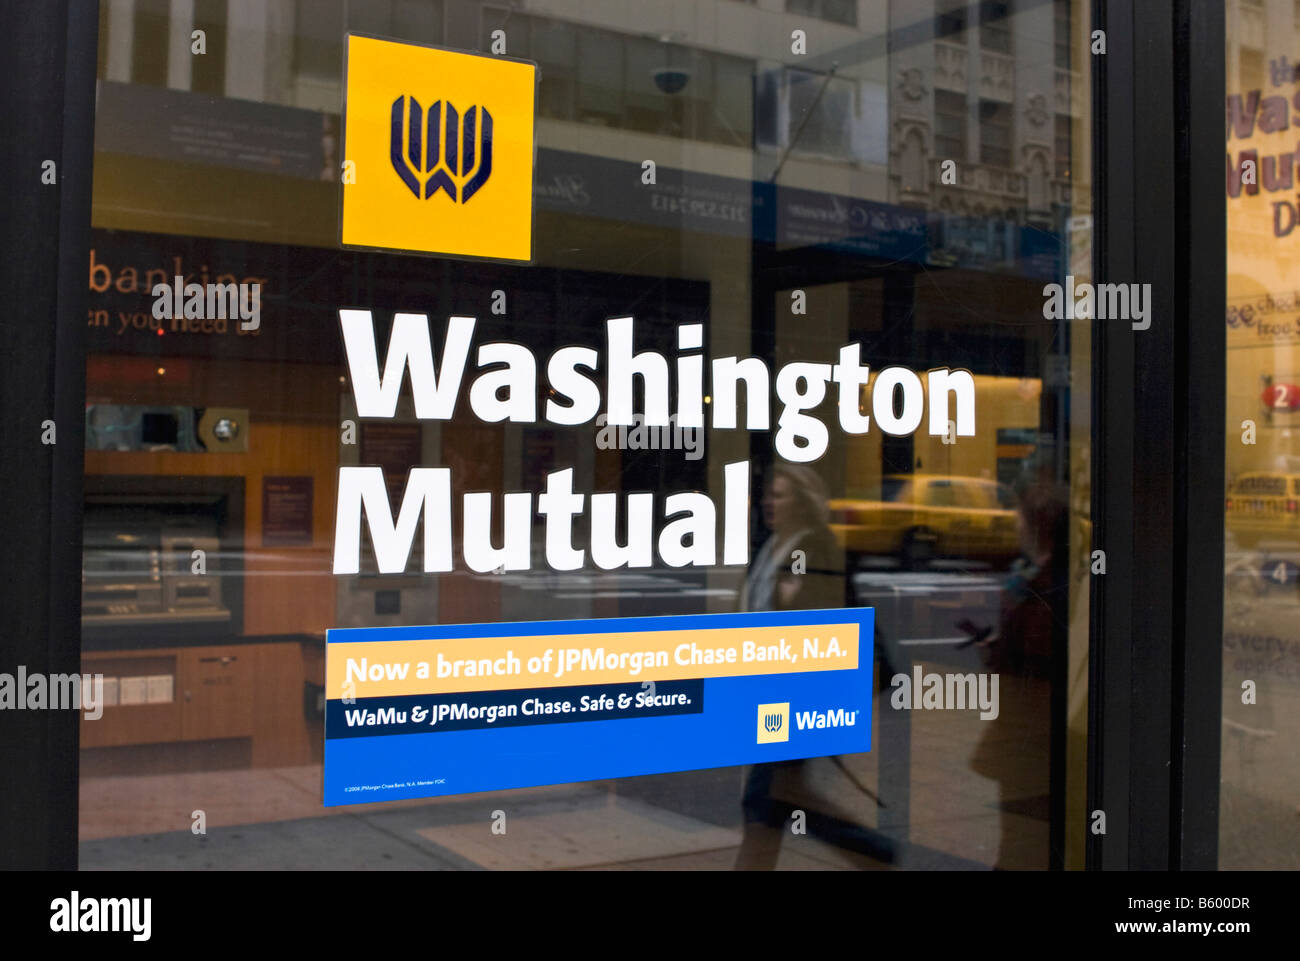 A Washington Mutual branch is seen in New York, New York. - Stock Image